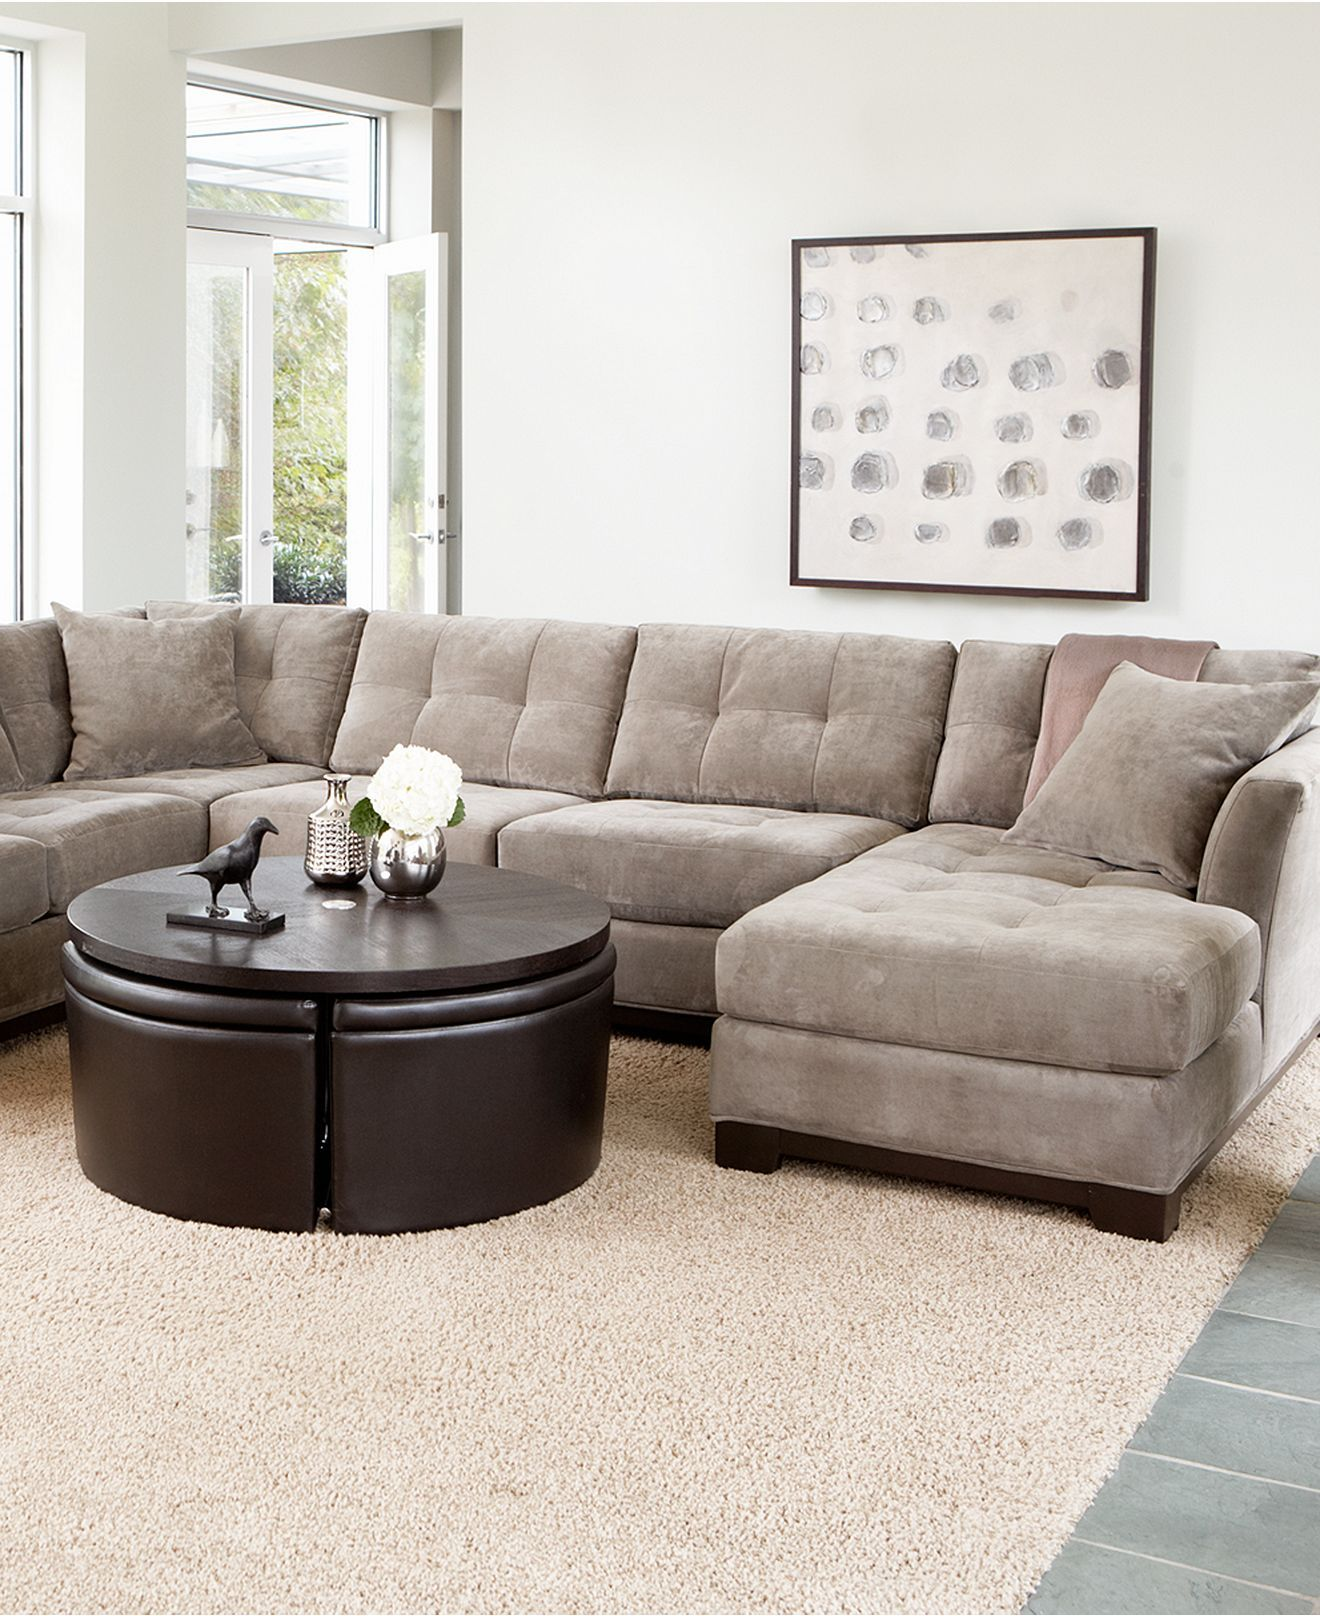 Astonishing Elliot Fabric Sectional Sofa Collection Sectionals Creativecarmelina Interior Chair Design Creativecarmelinacom